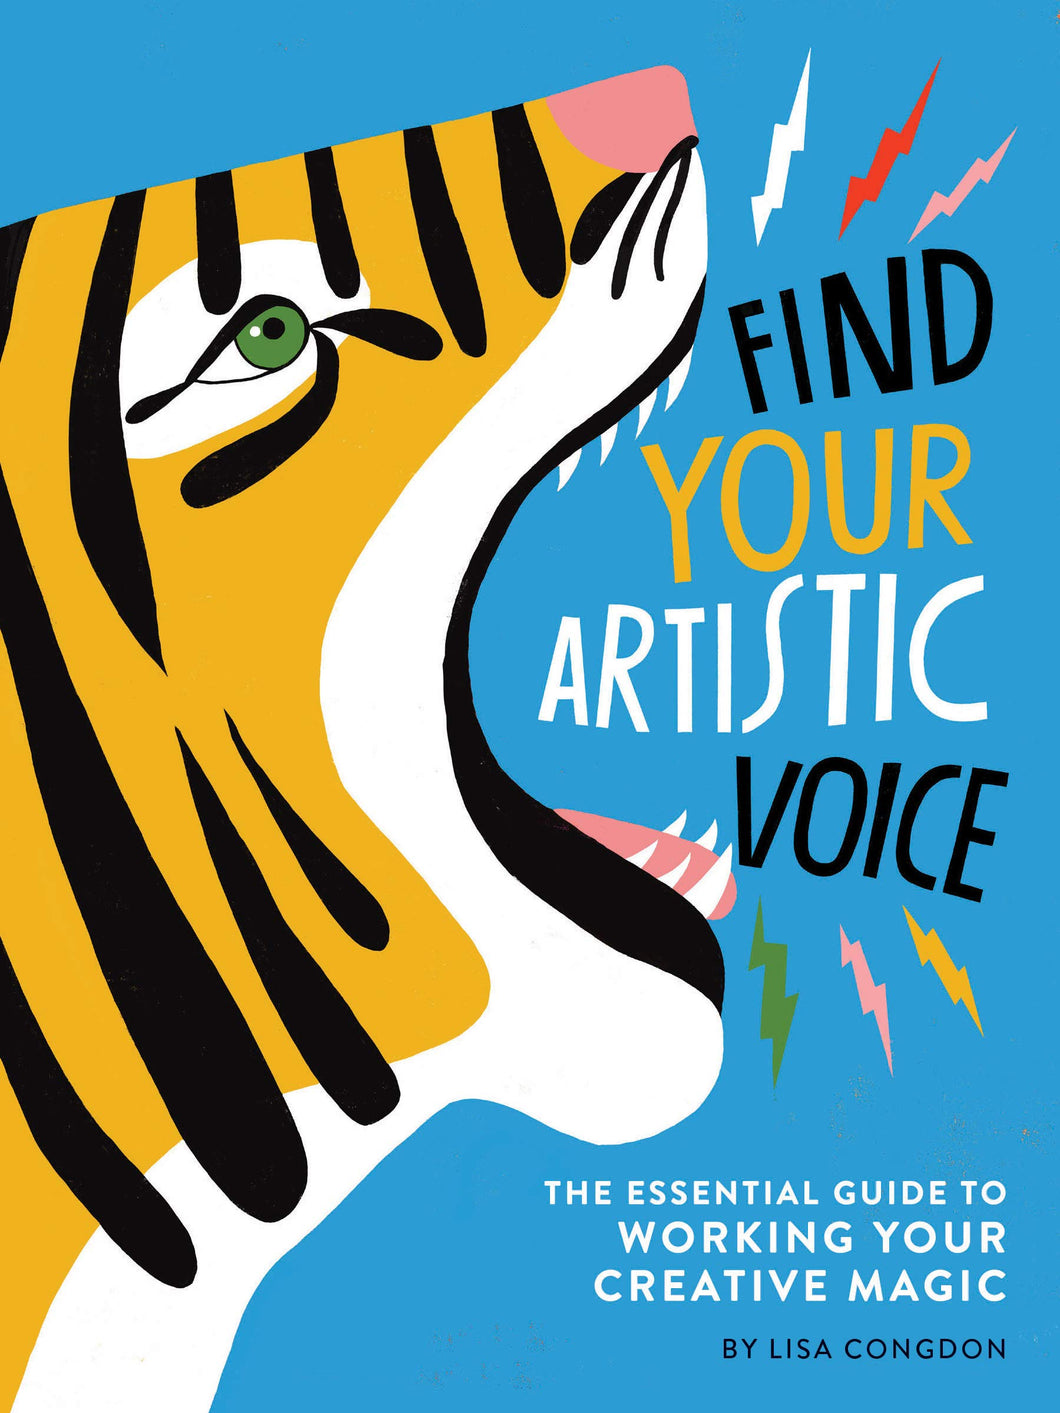 Find Your Artistic Voice by Lisa Congdon